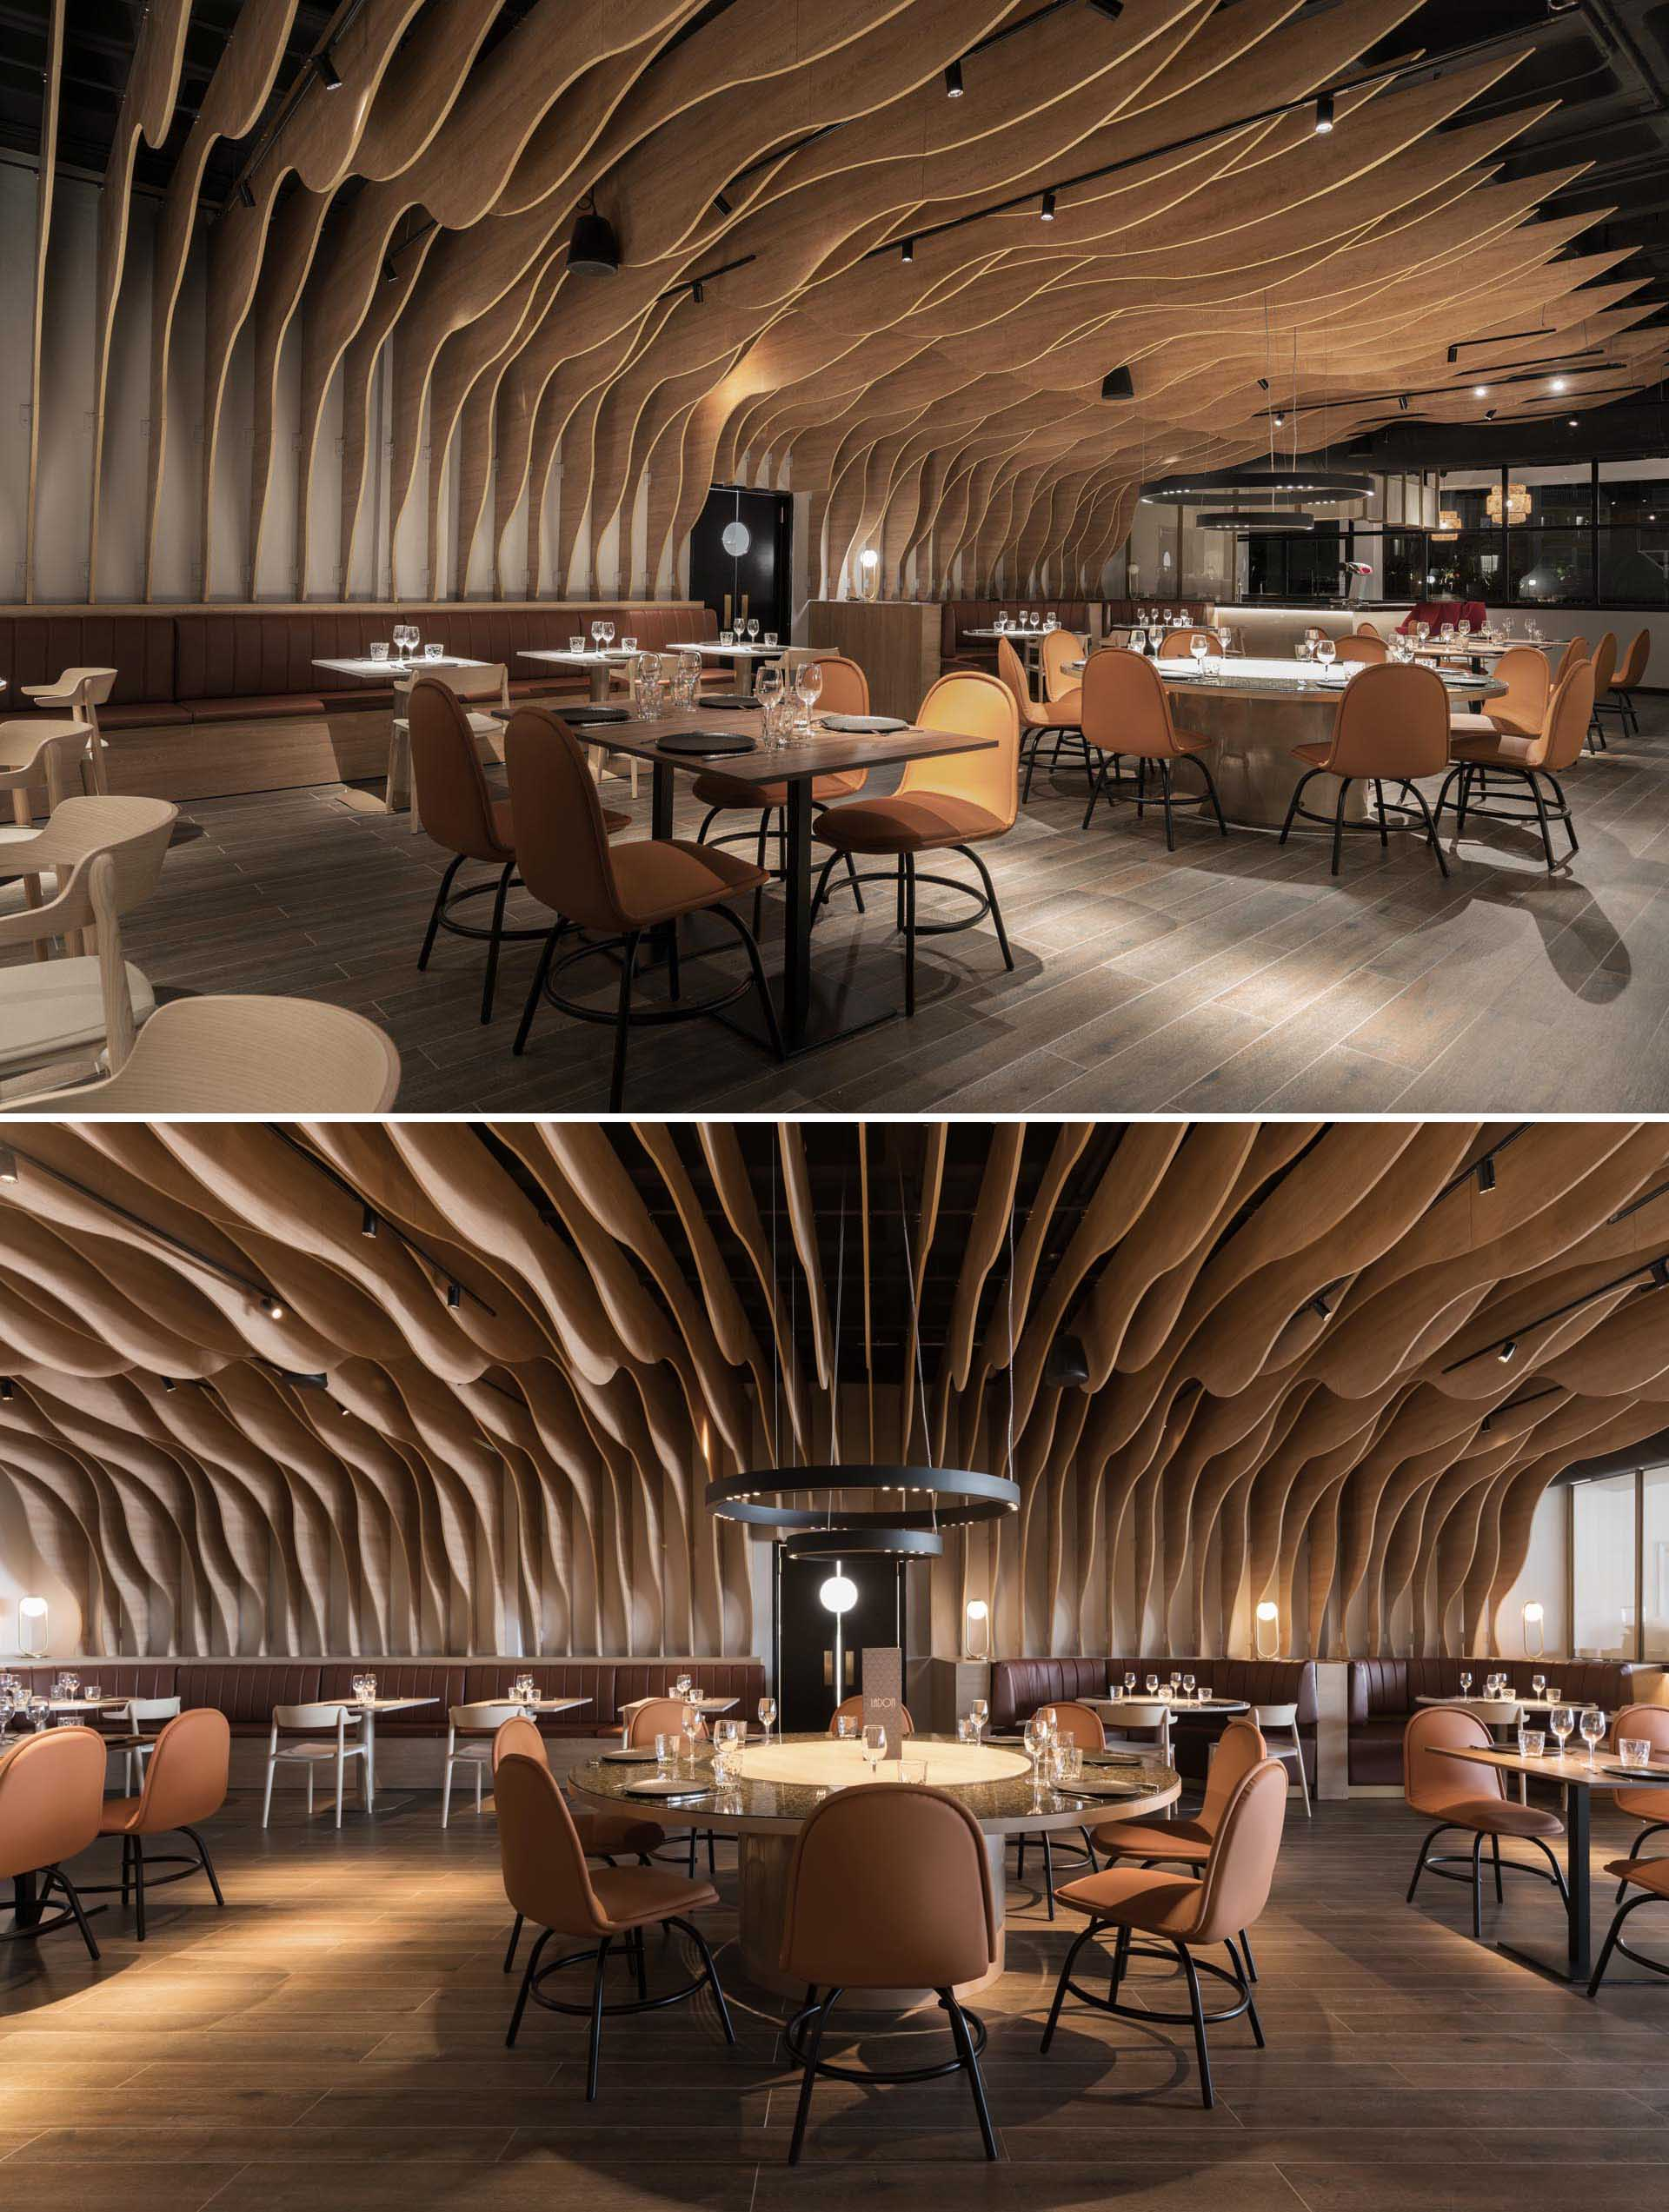 A modern restaurant with sculptural wood fins that cover the walls and ceiling.